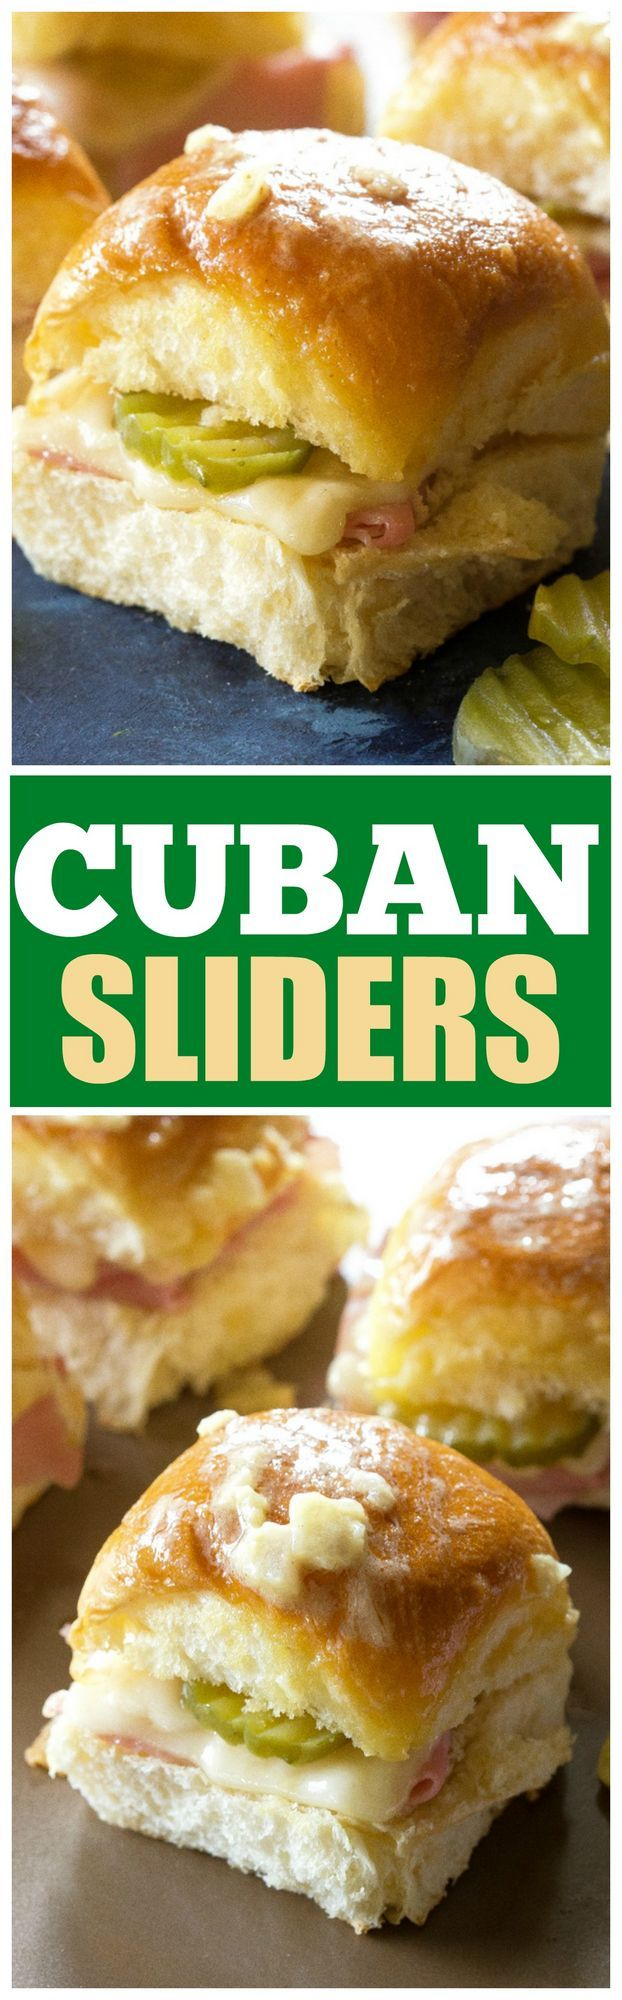 Cuban Sliders – ham, Swiss, pickles, and a mustard glaze makes these Cuban sliders a great appetizer for any party. Made with Hawaiian rolls! Cuban Sliders I know what you're thinking, Cuban Sliders.